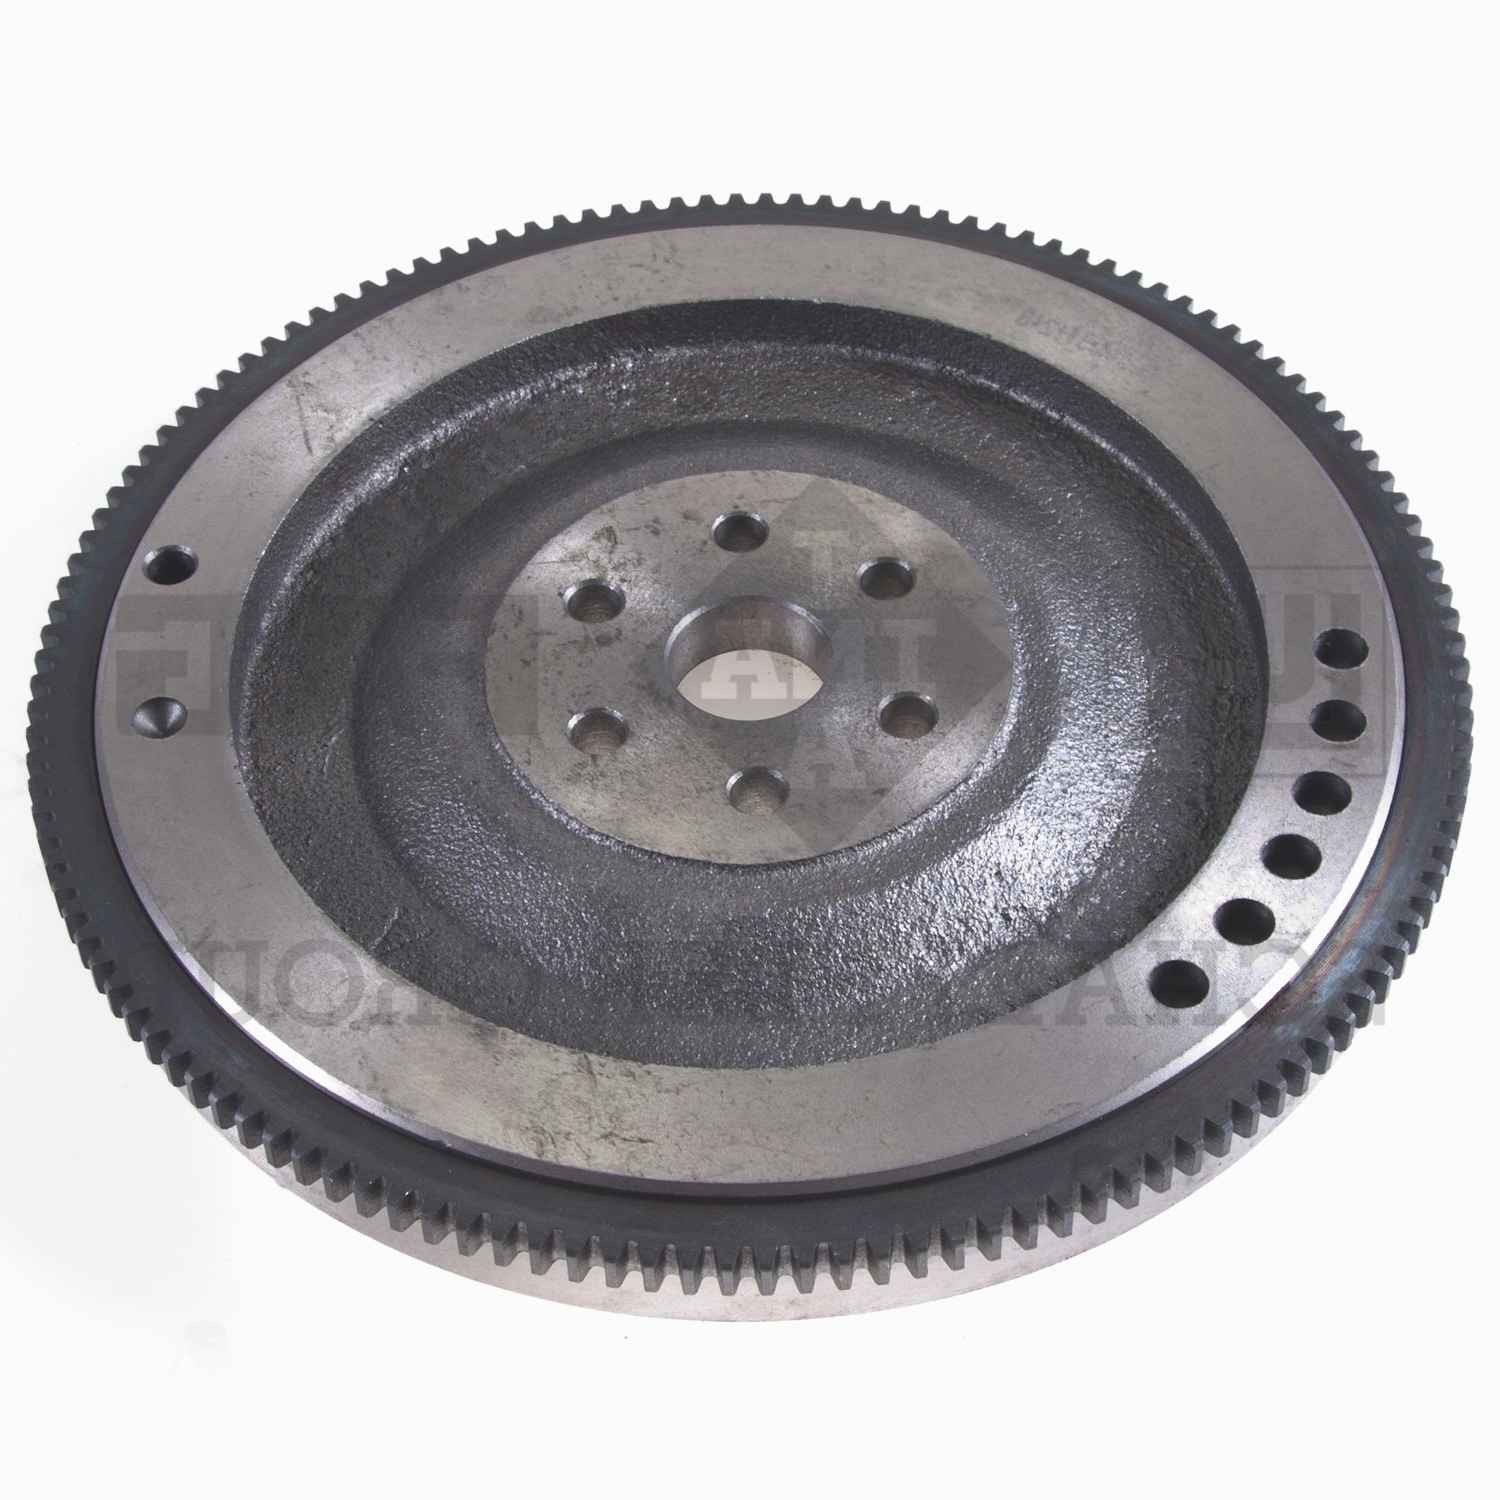 Flywheel Clutch Diagram New ford Ranger Clutch Of Flywheel Clutch Diagram Mounting Clutch to Flywheel and Mating Gearbox Input Shaft